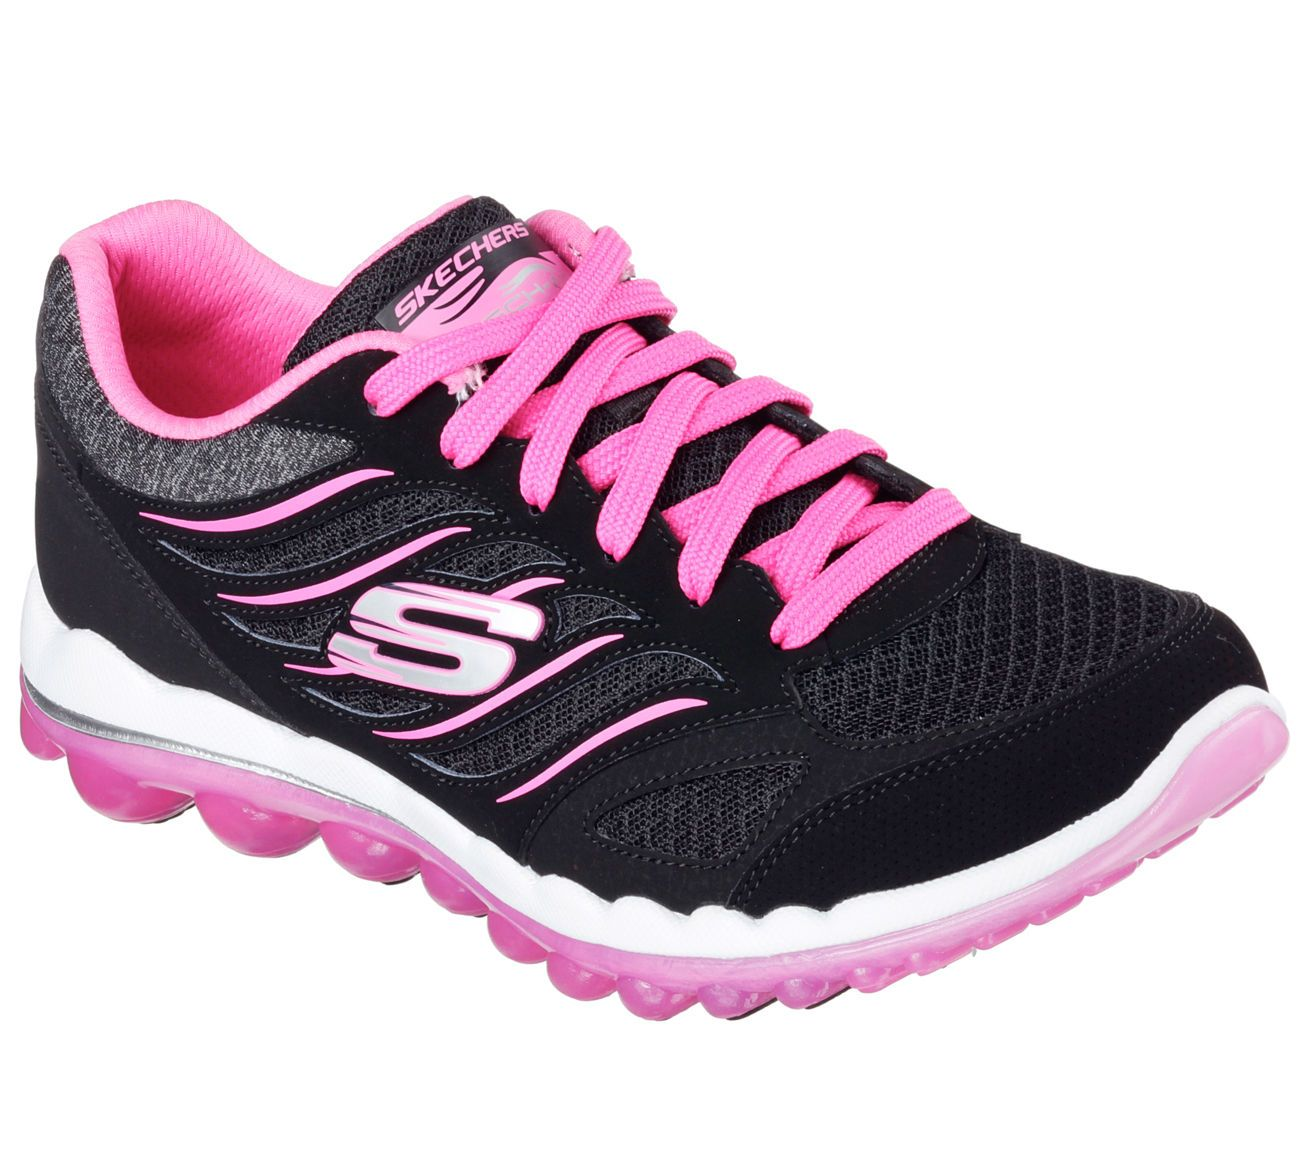 12210 Black Pink Skechers Shoes Memory Foam Women Mesh Sport Air Cushion  Comfort